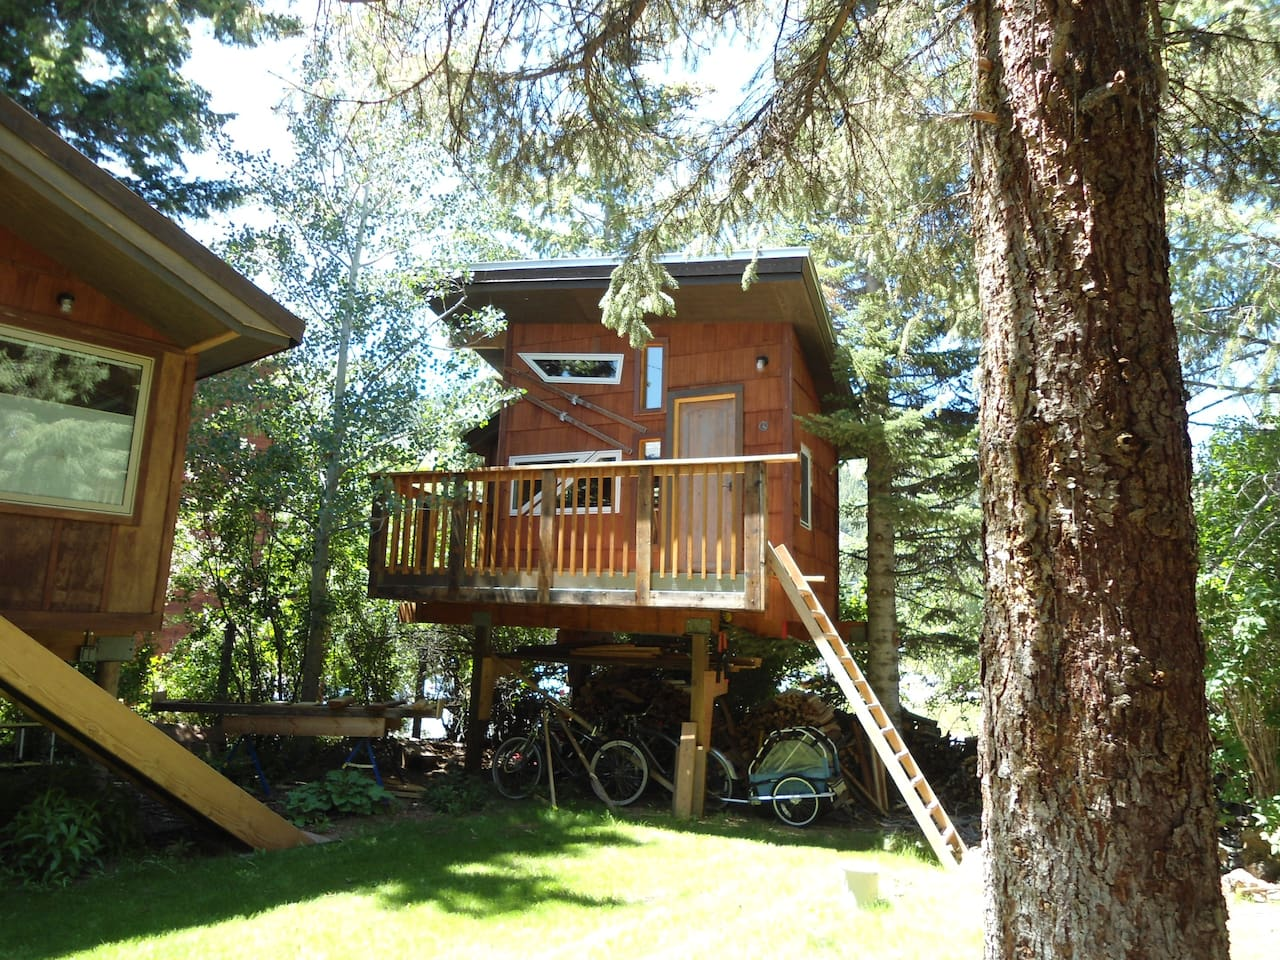 cozy heated treehouse- now improved with stairs and handrail- see next photo